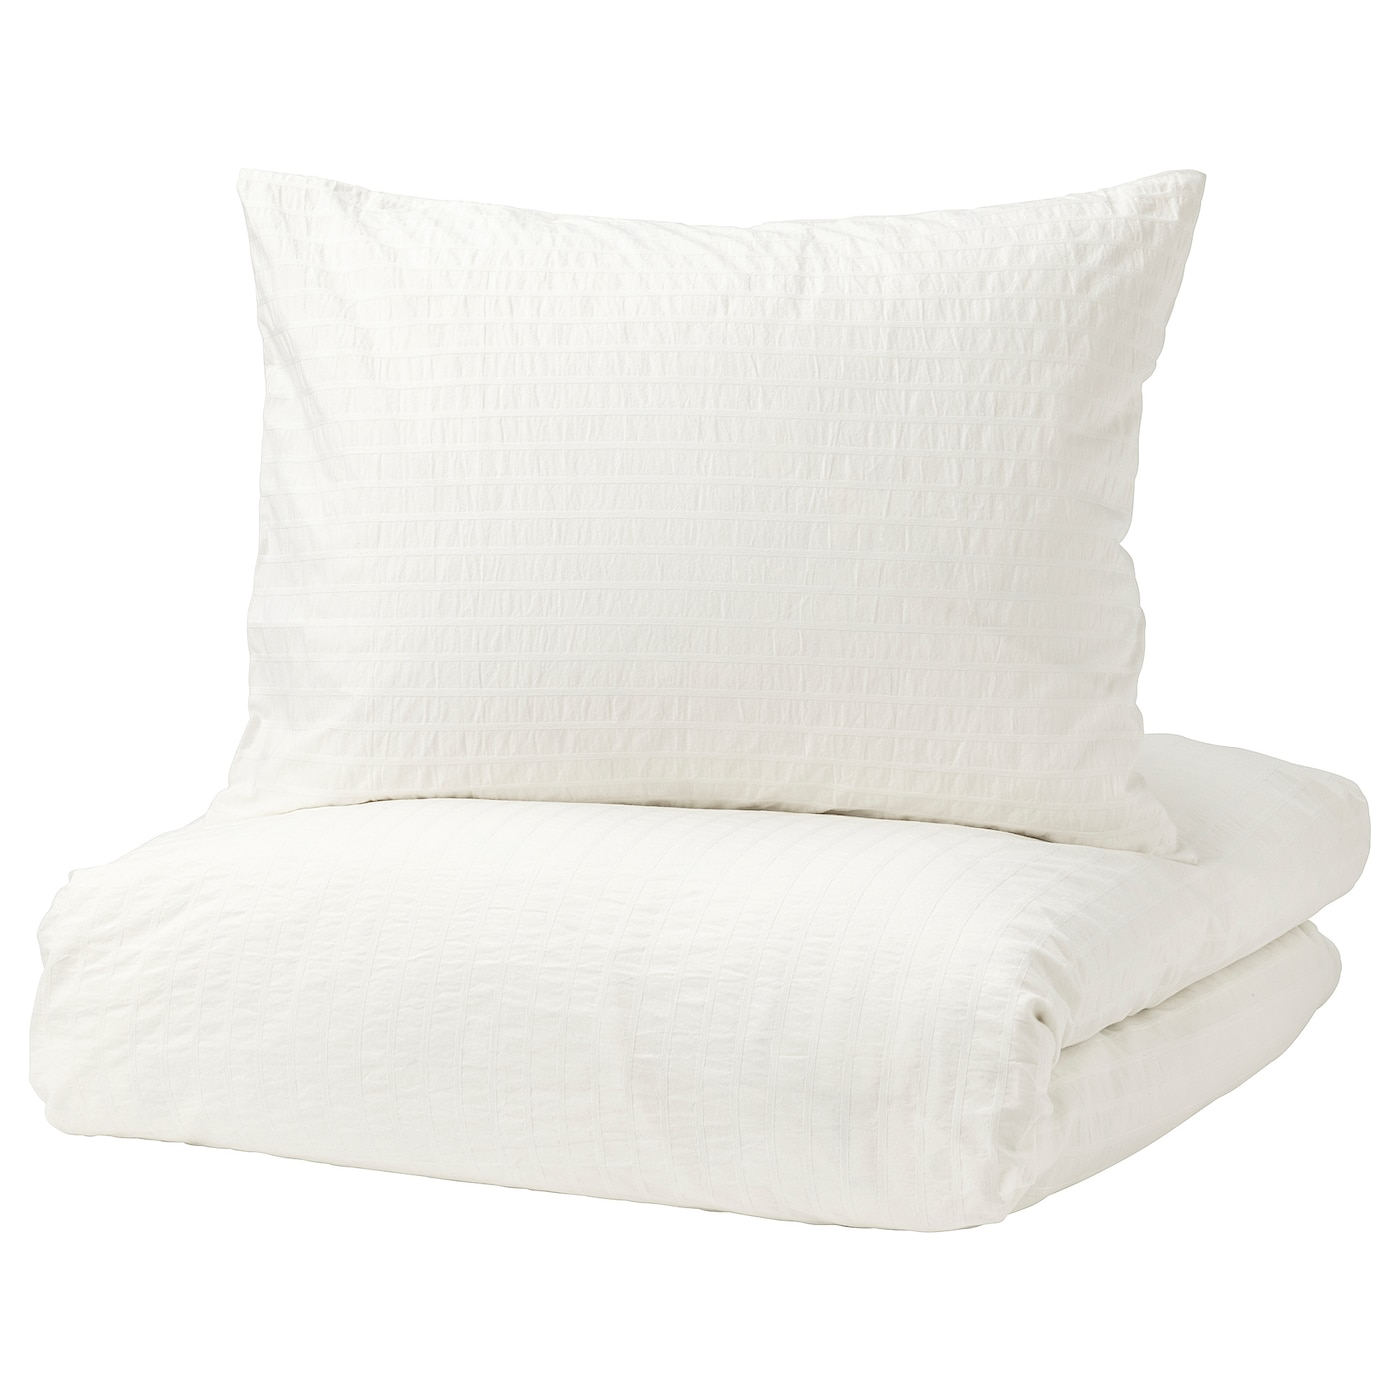 Shop OFELIA VASS Duvet cover and pillowcase from Ikea on Openhaus